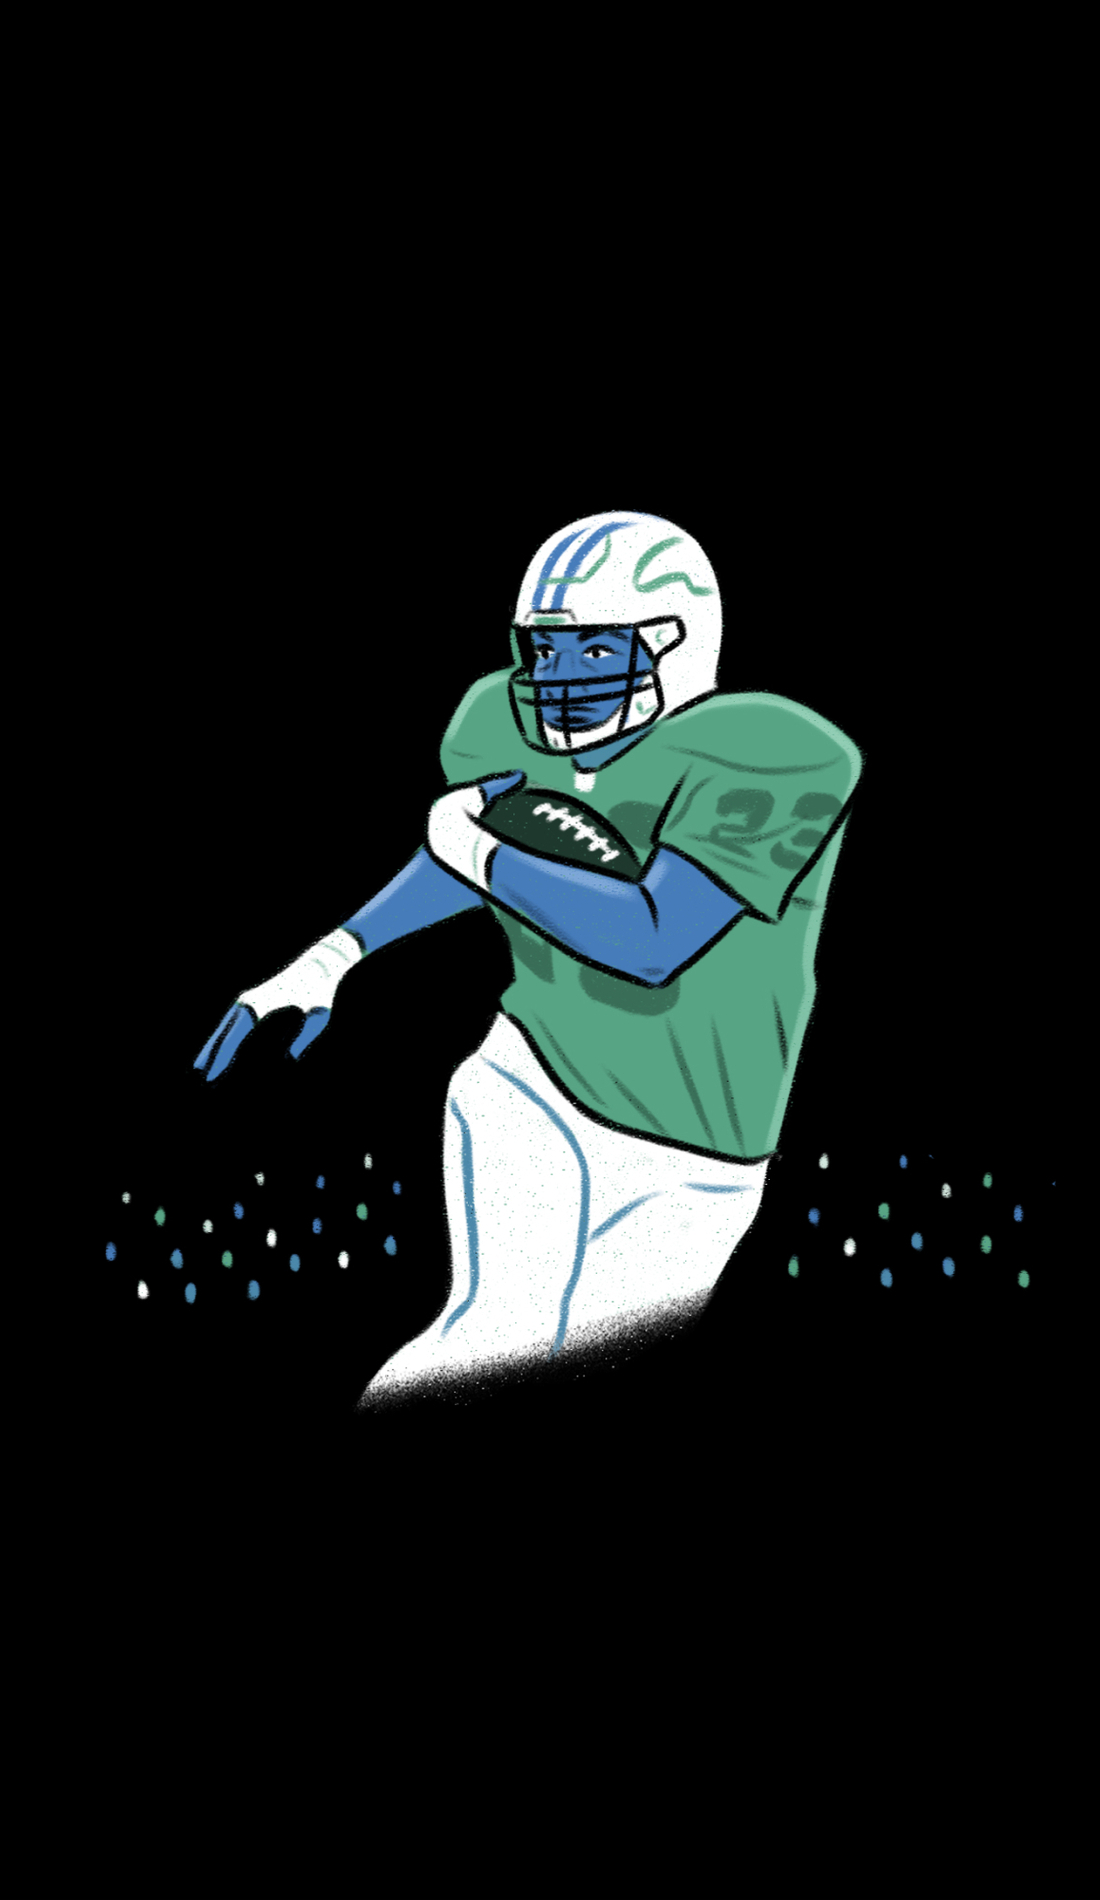 A Central Michigan Chippewas Football live event